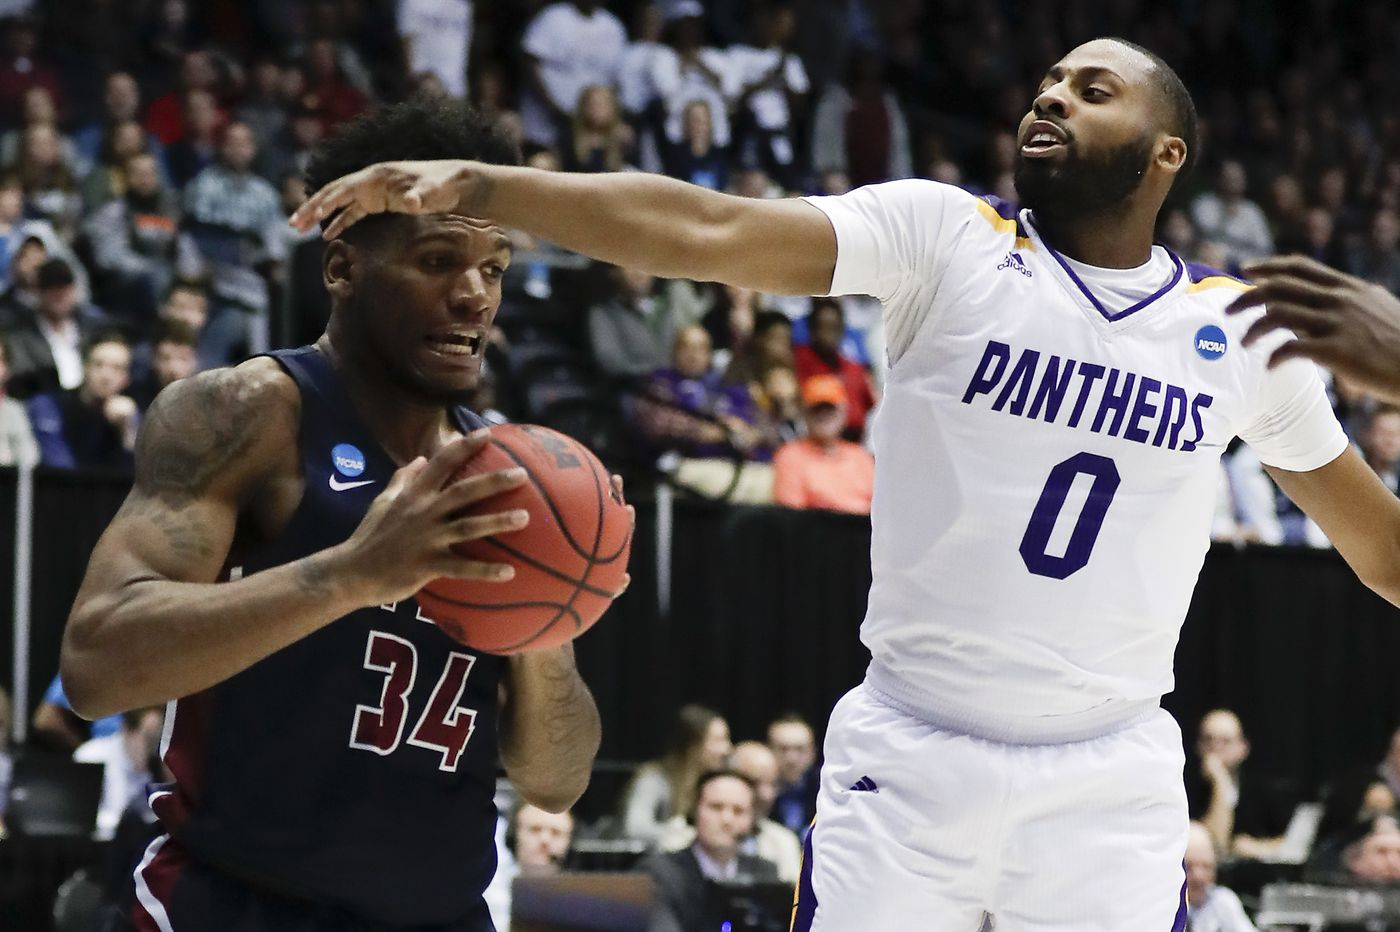 Former Schalick star Mike Holloway Jr. will always relish his NCAA Tournament moment